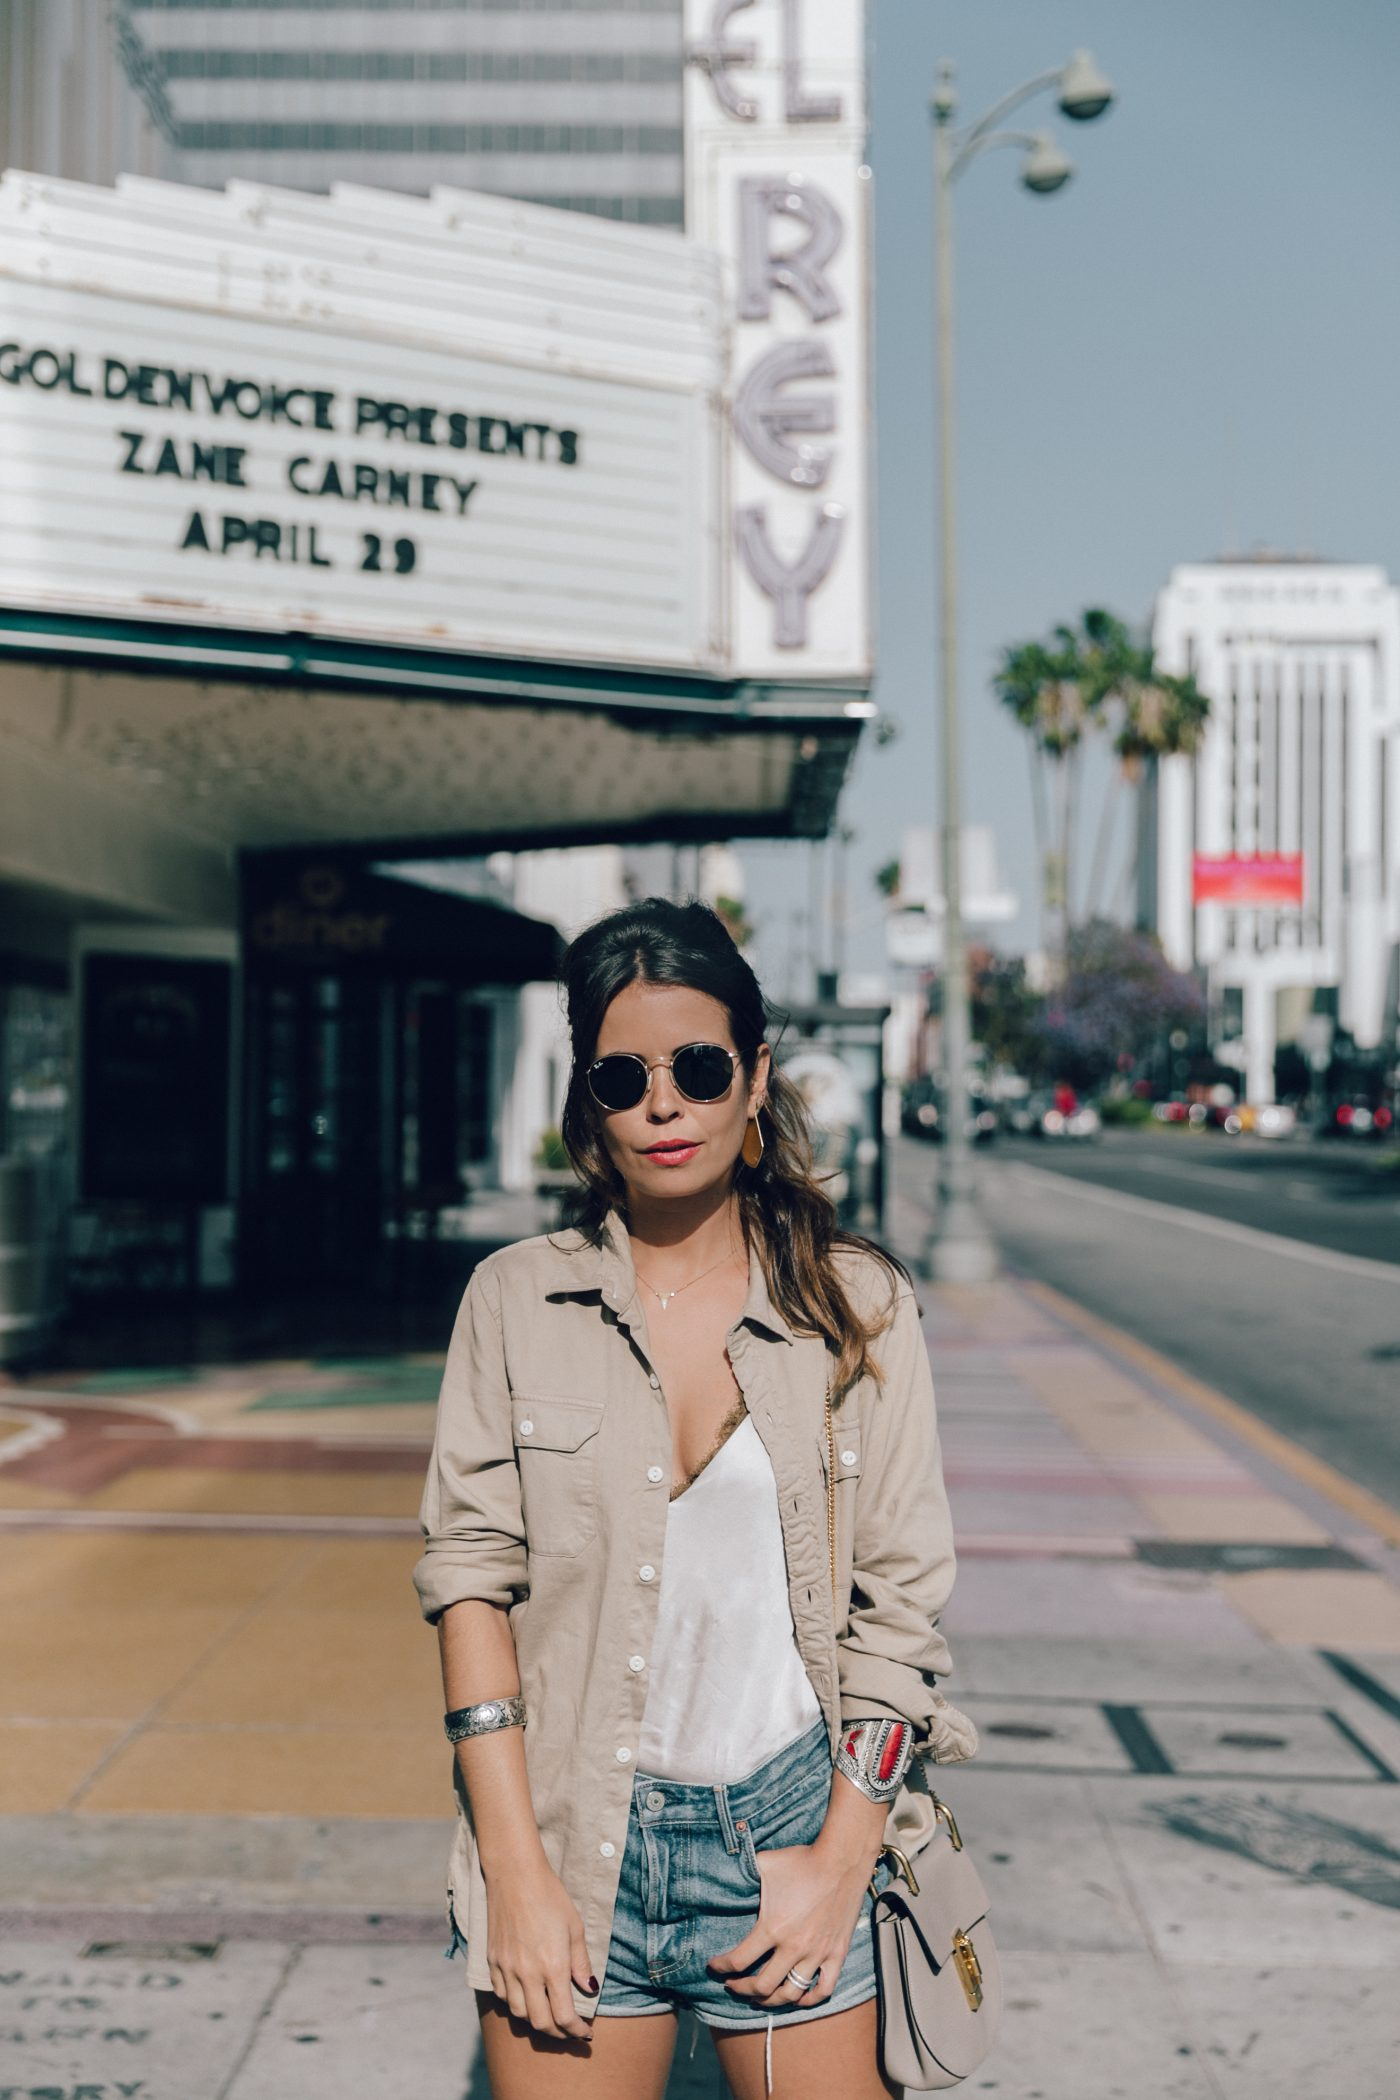 Levis_Shirt-GRLFRND_Denim-Chloe_Bag-Los_Angeles-Shorts-Outfit-Street_Style-Ray_Ban-Street_Style-Collage_Vintage-5